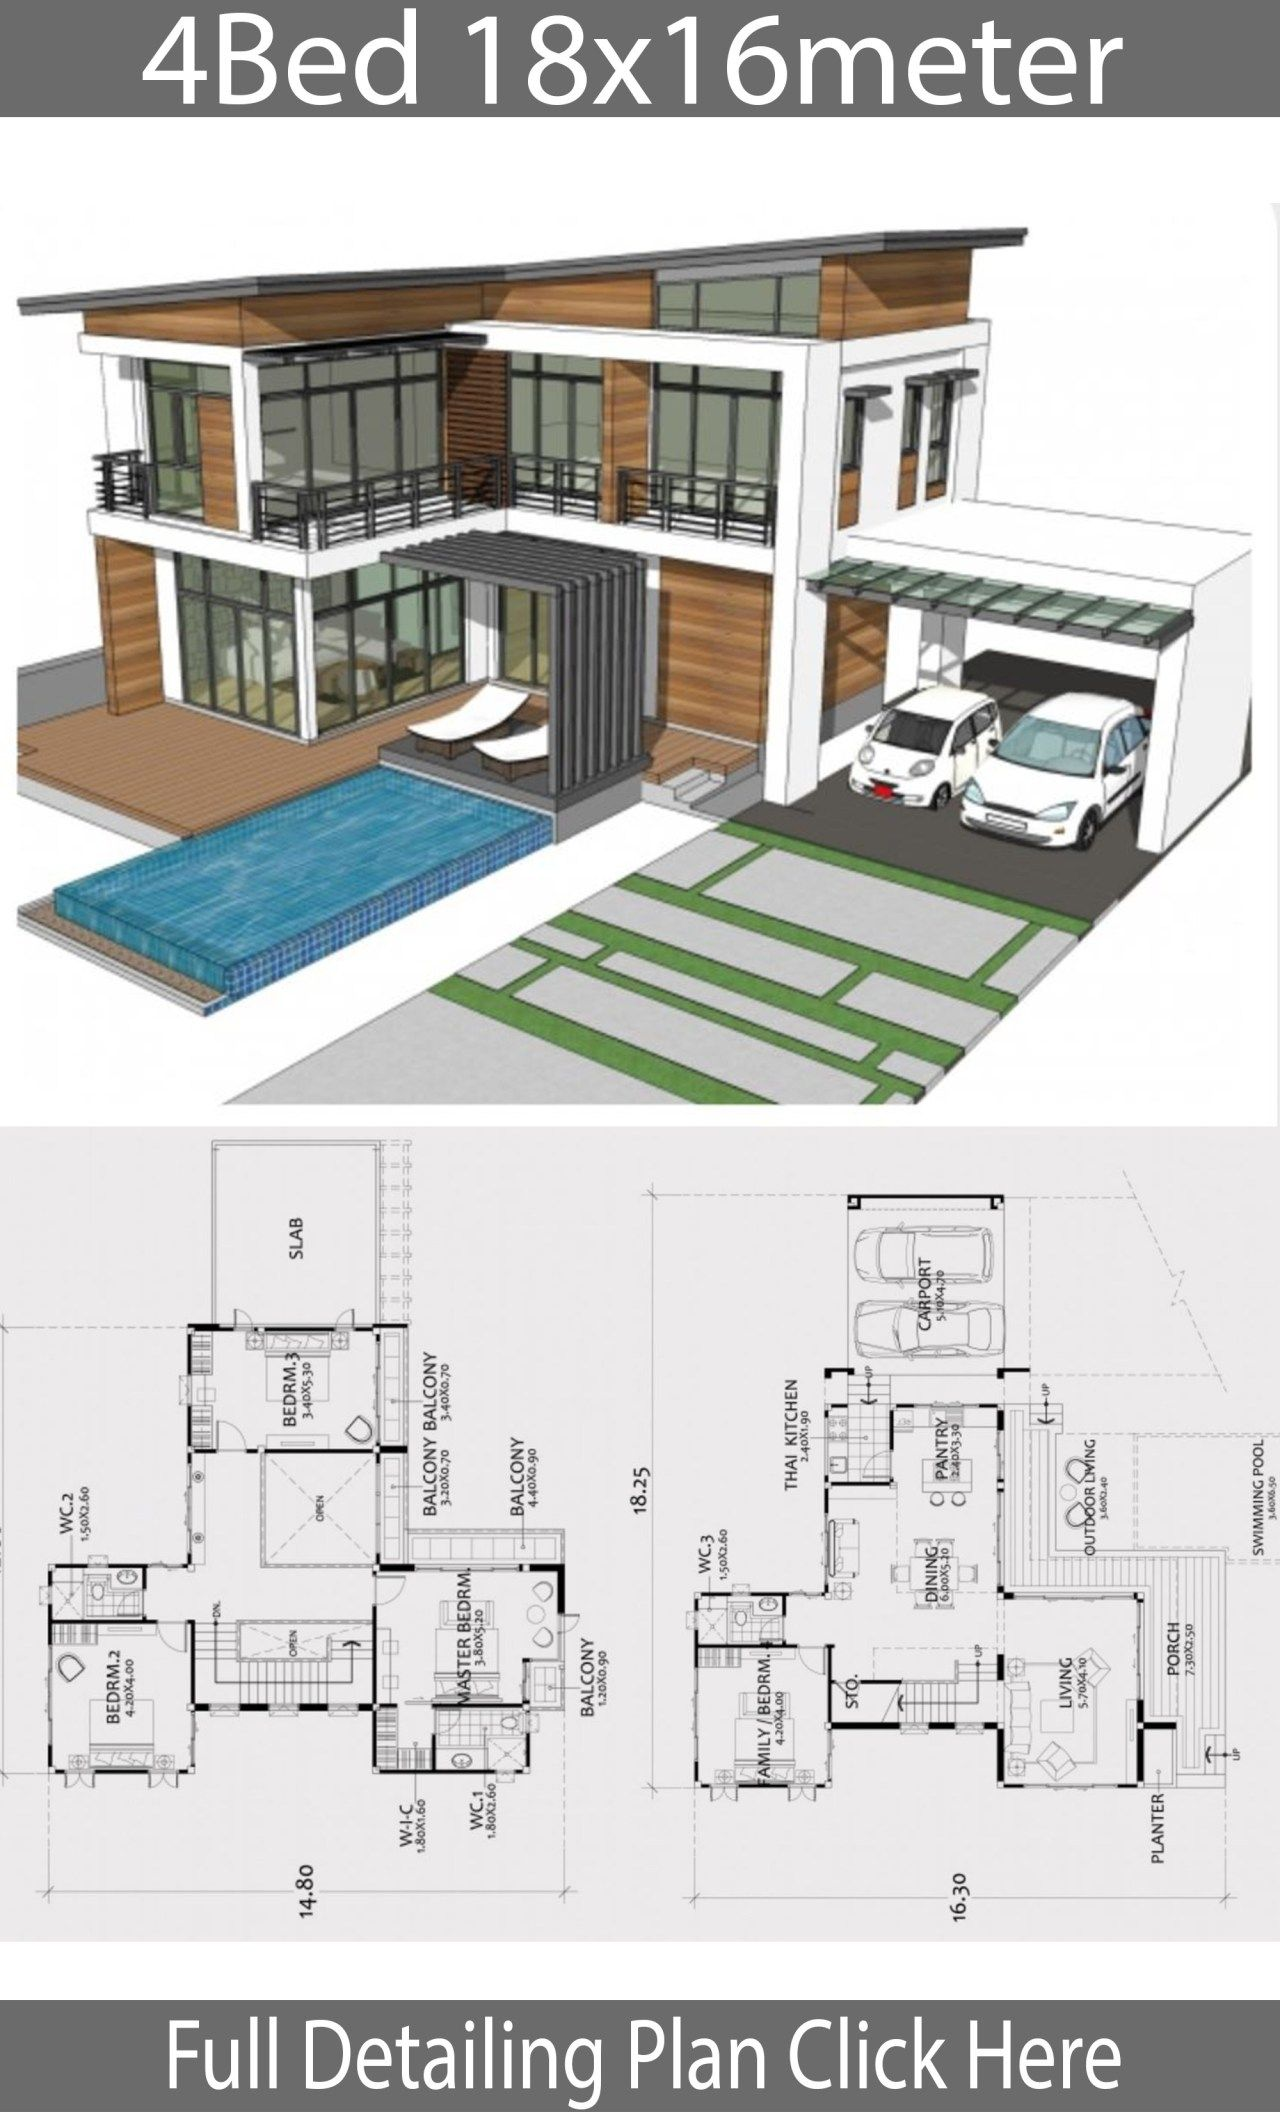 Home Design Plan 18x16m With 4 Bedrooms Home Ideas Modern House Plans Big Modern Houses Modern Contemporary House Plans